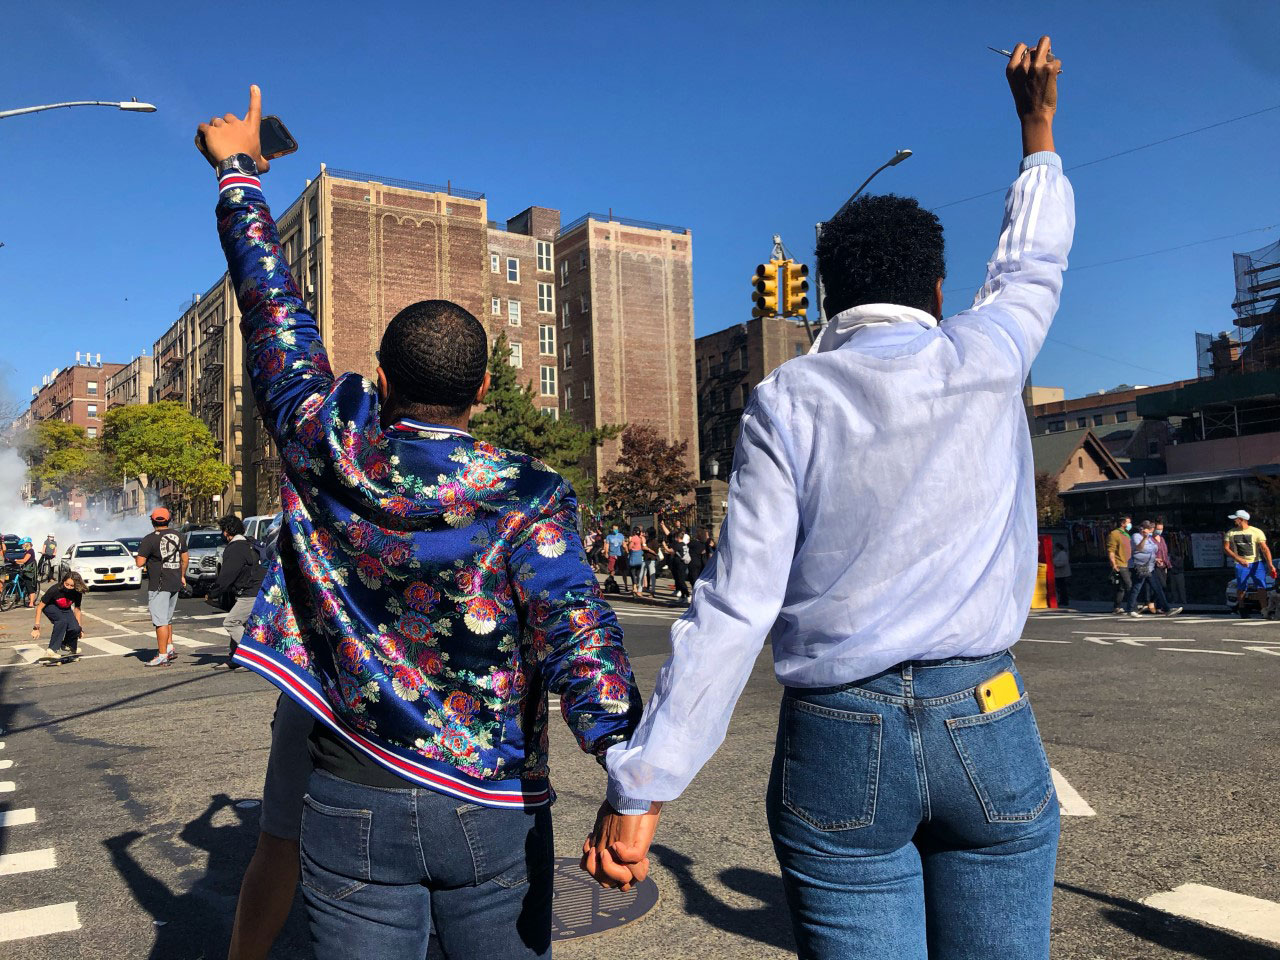 Two women holding hands with their backs facing the camera, cheering toward the street